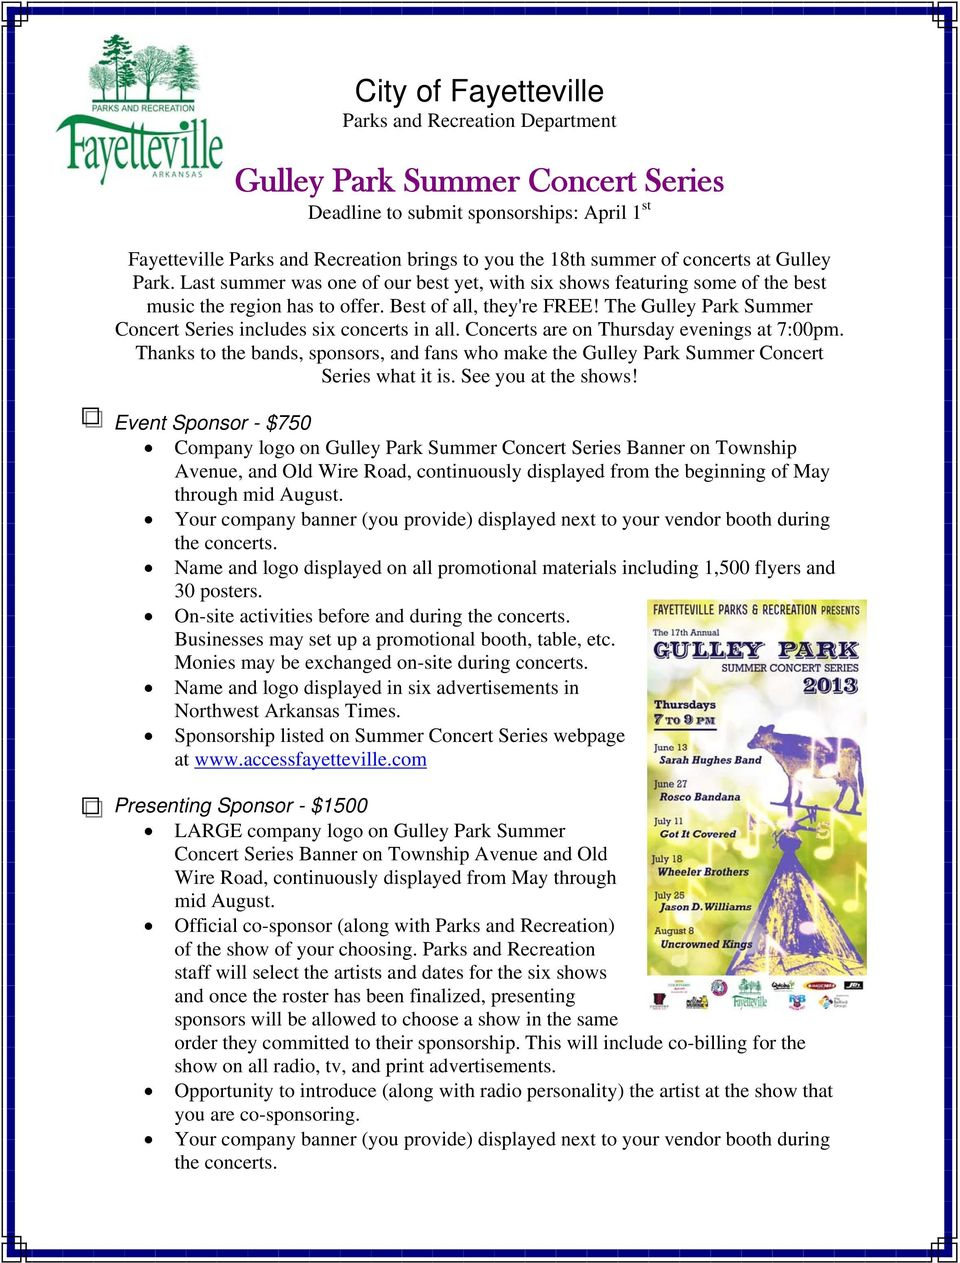 The Gulley Park Summer Concert Series includes six concerts in all. Concerts are on Thursday evenings at 7:00pm.